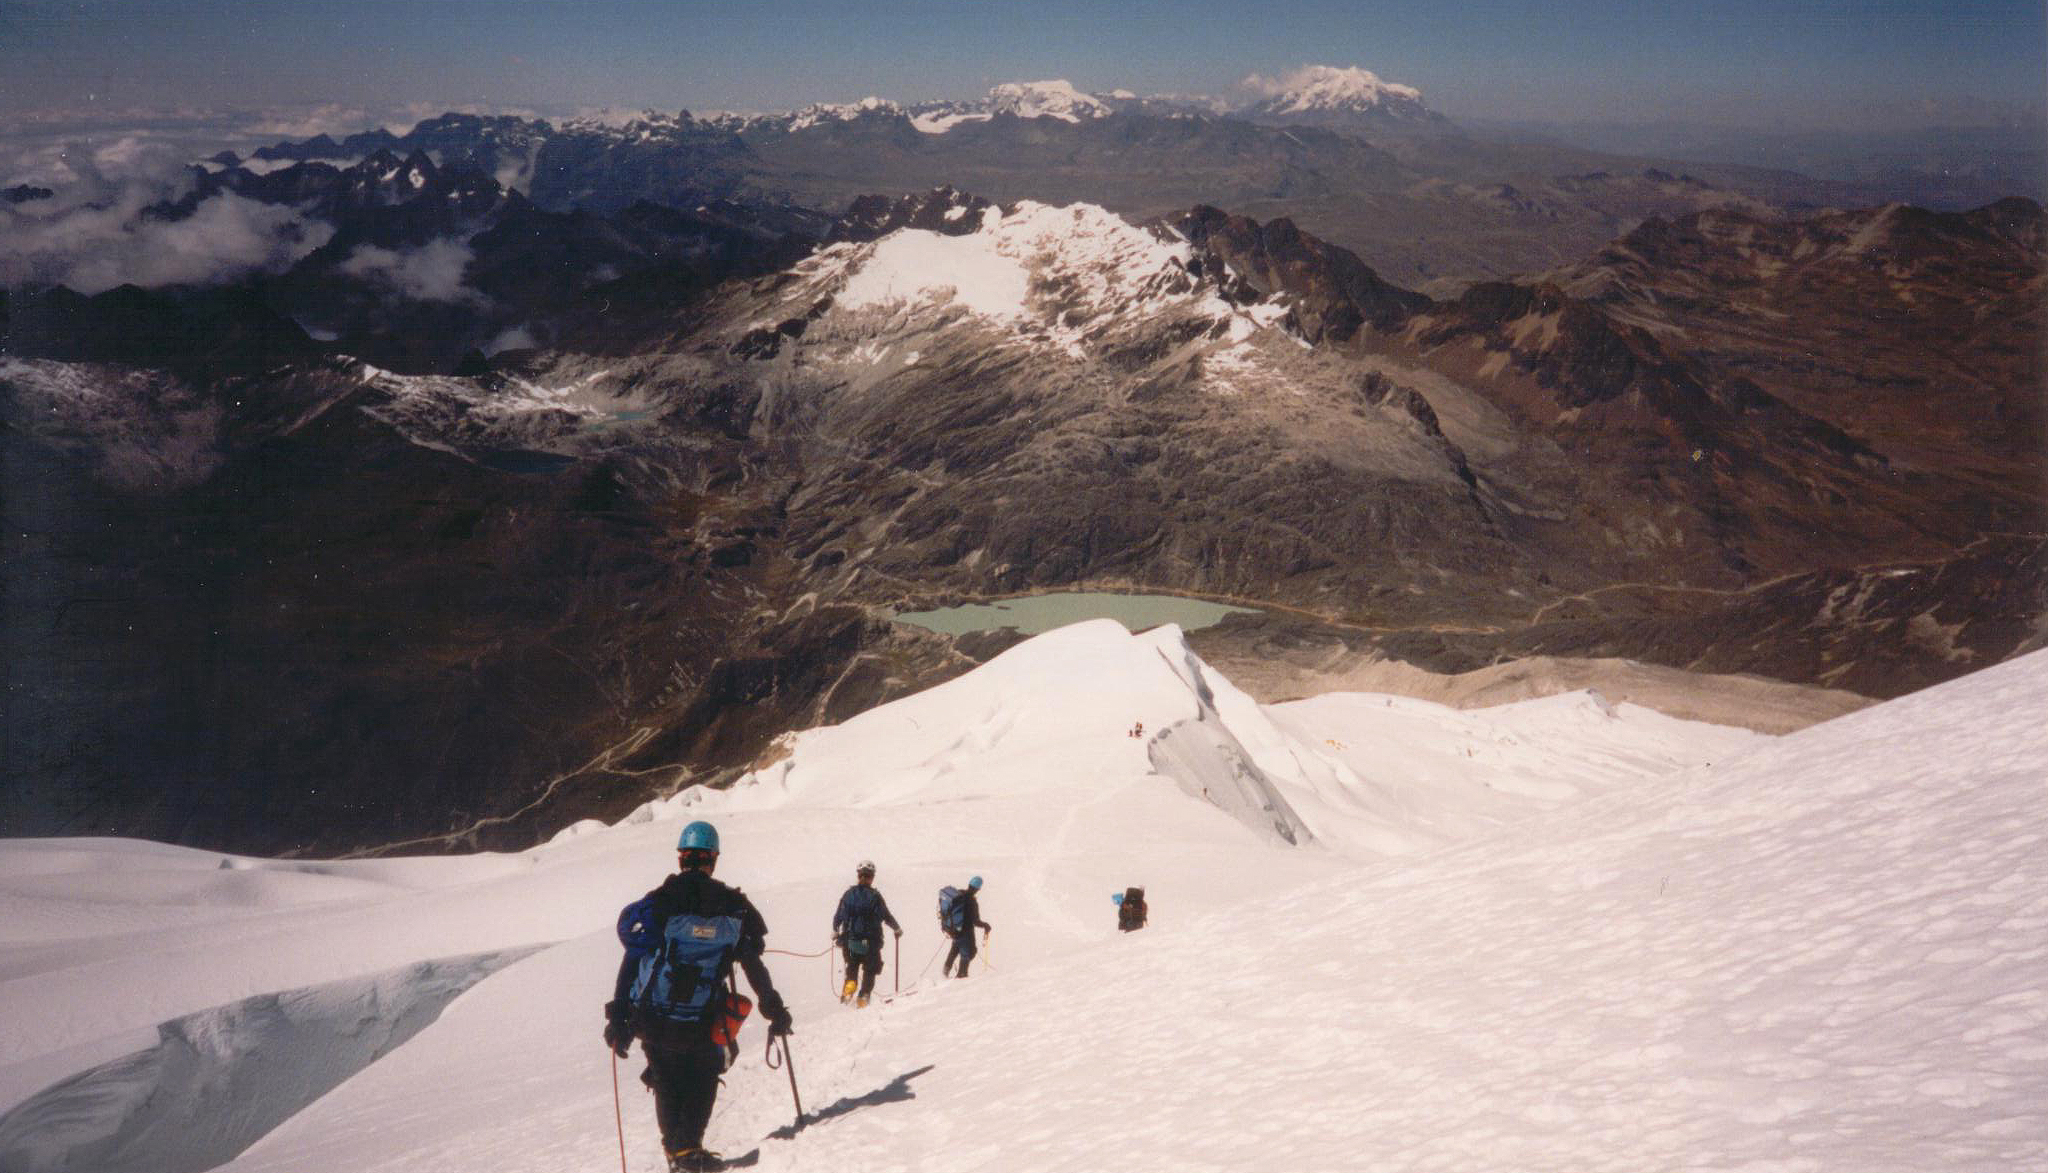 The descent to High Camp with Basecamp in the distance on the far side of the lake.